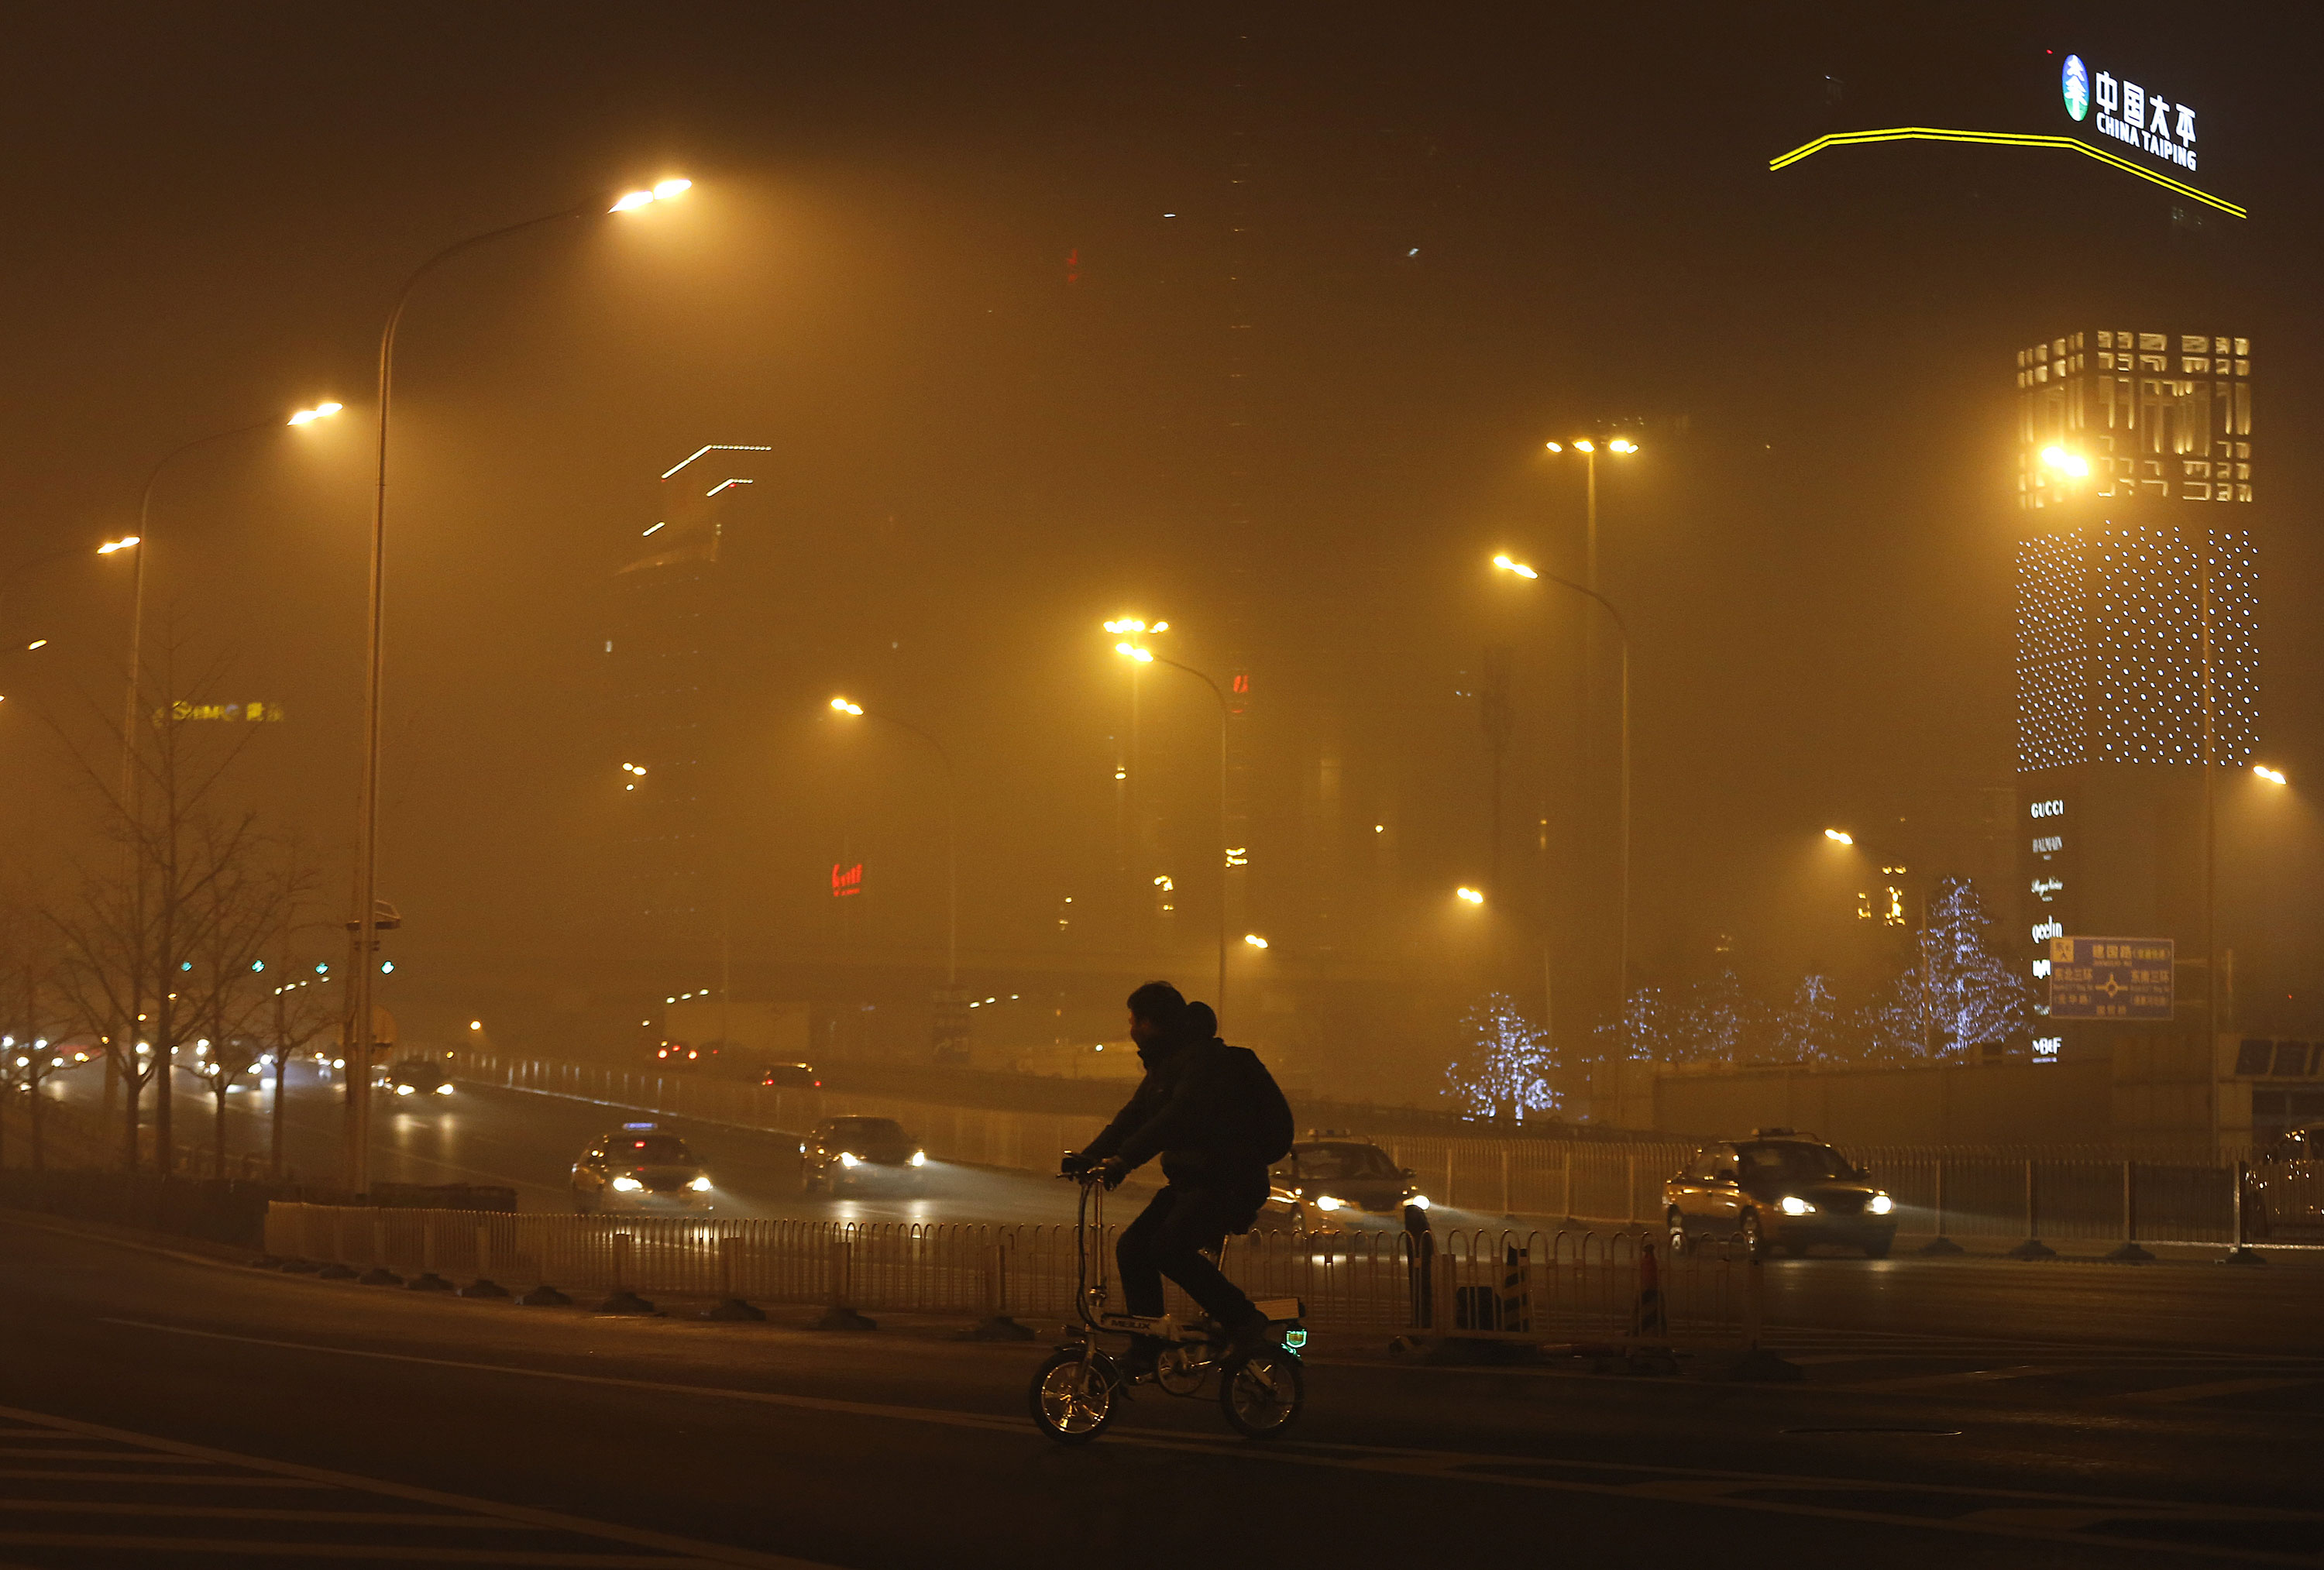 Beijing has issued its highest smog alert of the year after pollution reached hazardous levels. [Andy Wong/AP]